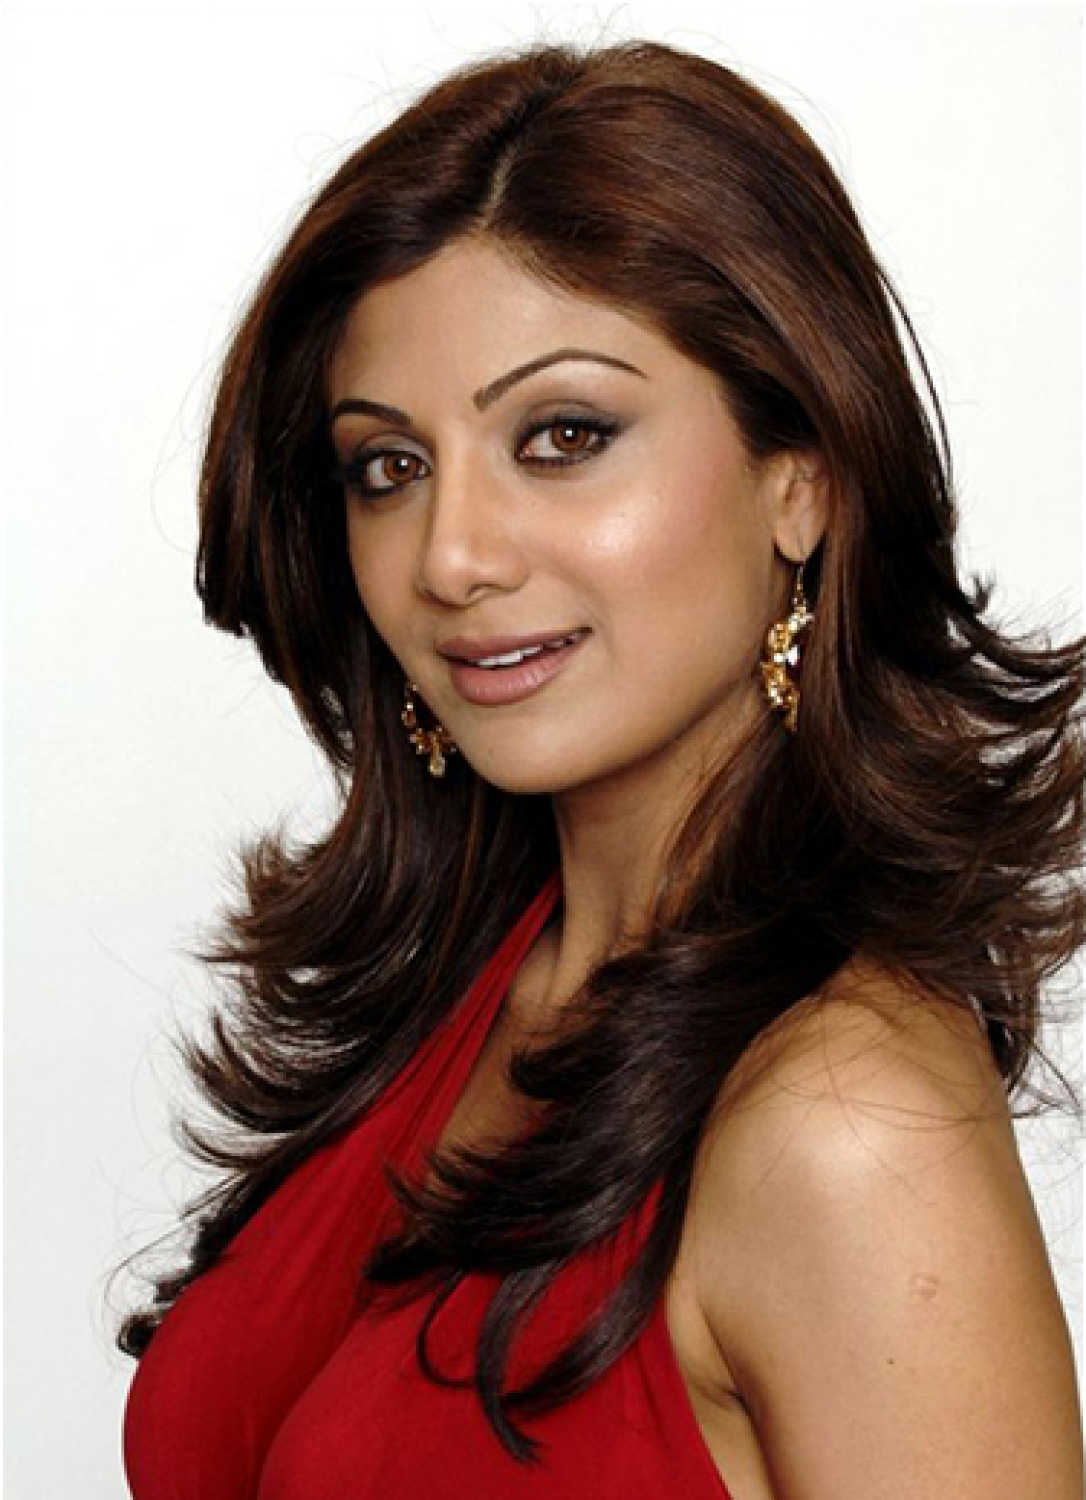 Shilpa Shetty nude (11 foto and video), Pussy, Sideboobs, Instagram, lingerie 2006